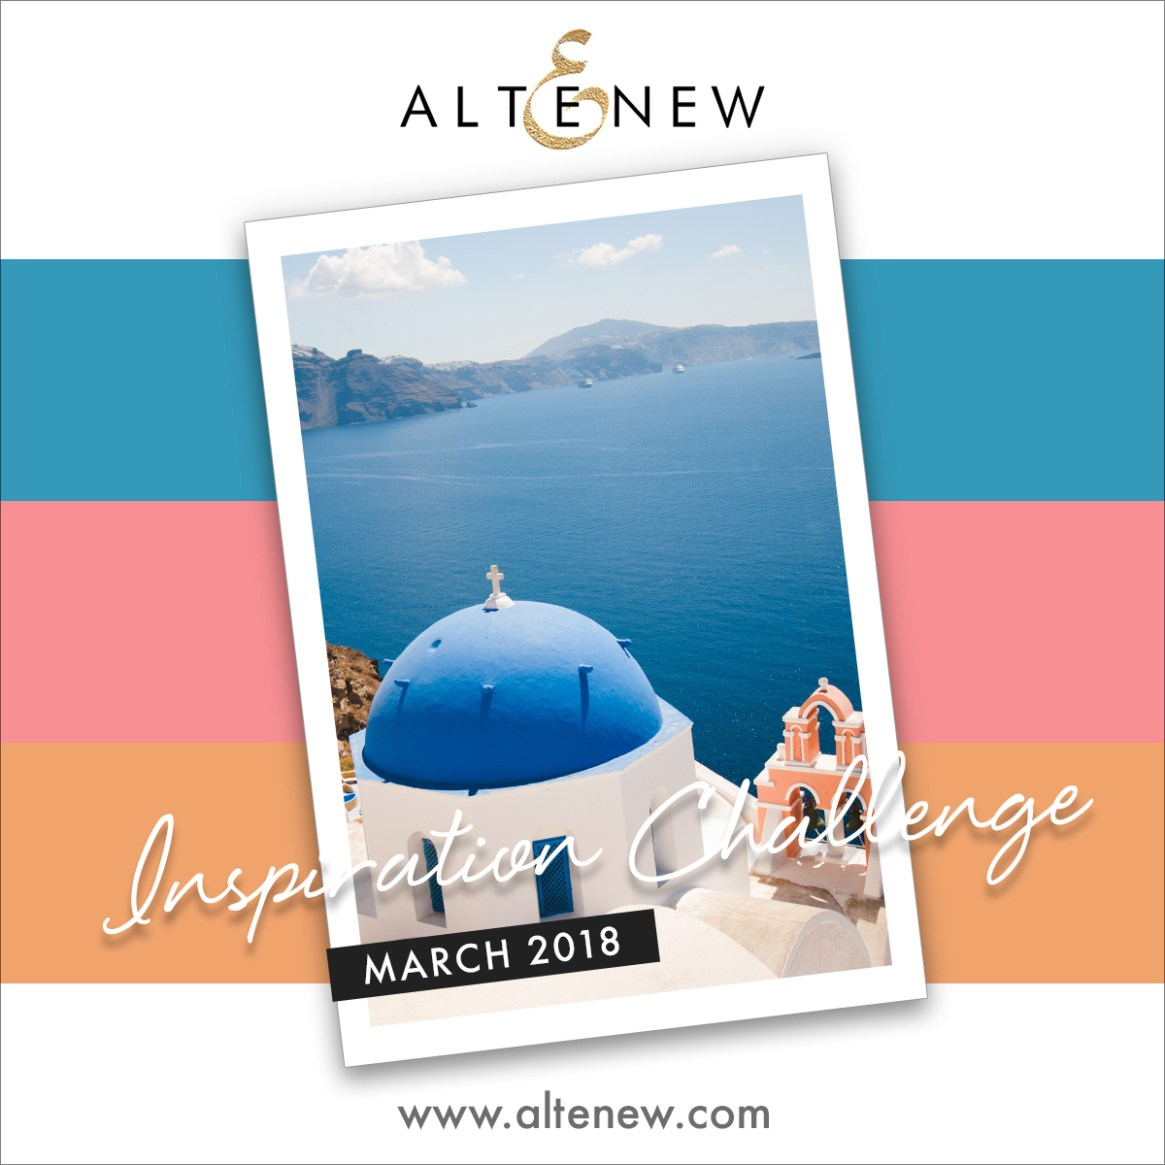 Altenew _March 2018_Inspirationphoto